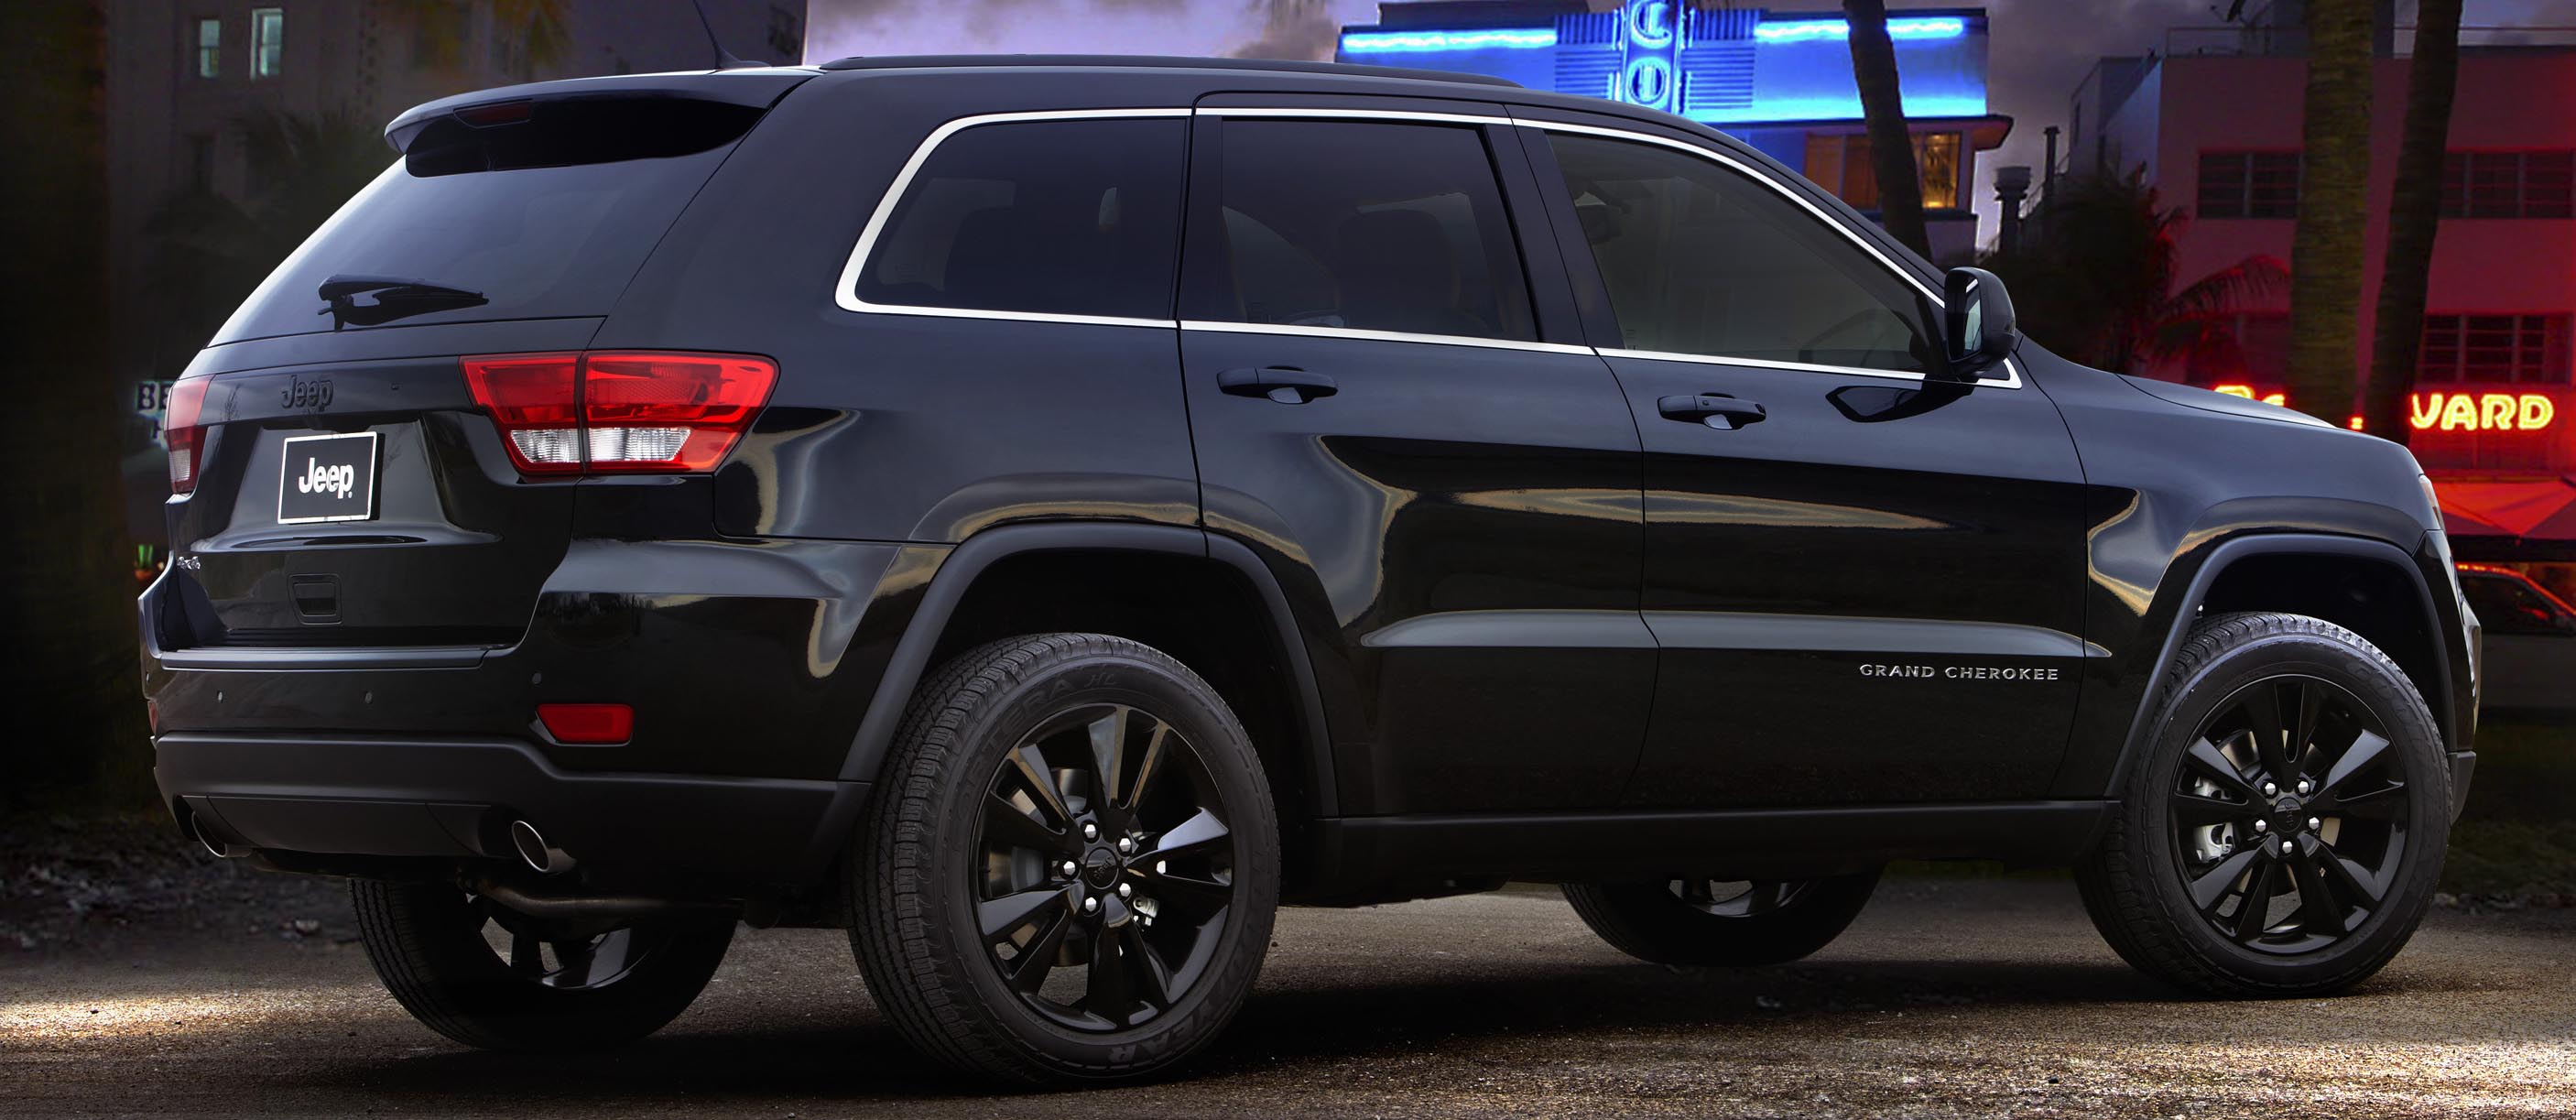 2012 jeep grand cherokee jeep savageonwheels. Cars Review. Best American Auto & Cars Review